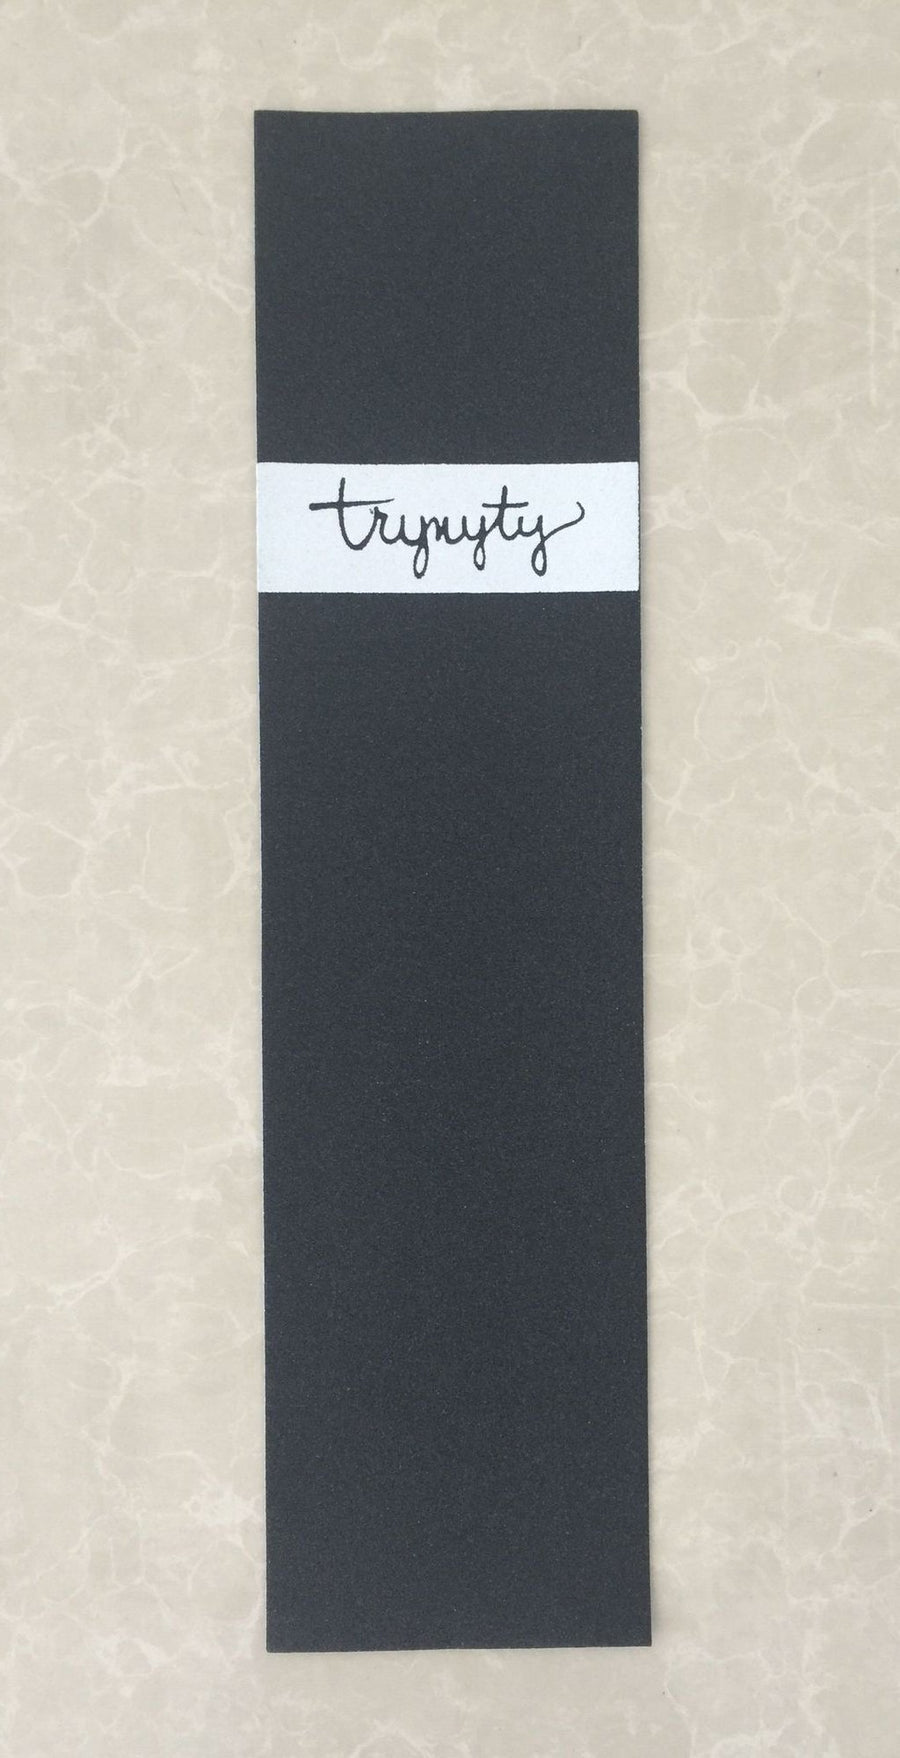 Trynyty Jordan Stanley Signature Griptape [6″ x 24″]